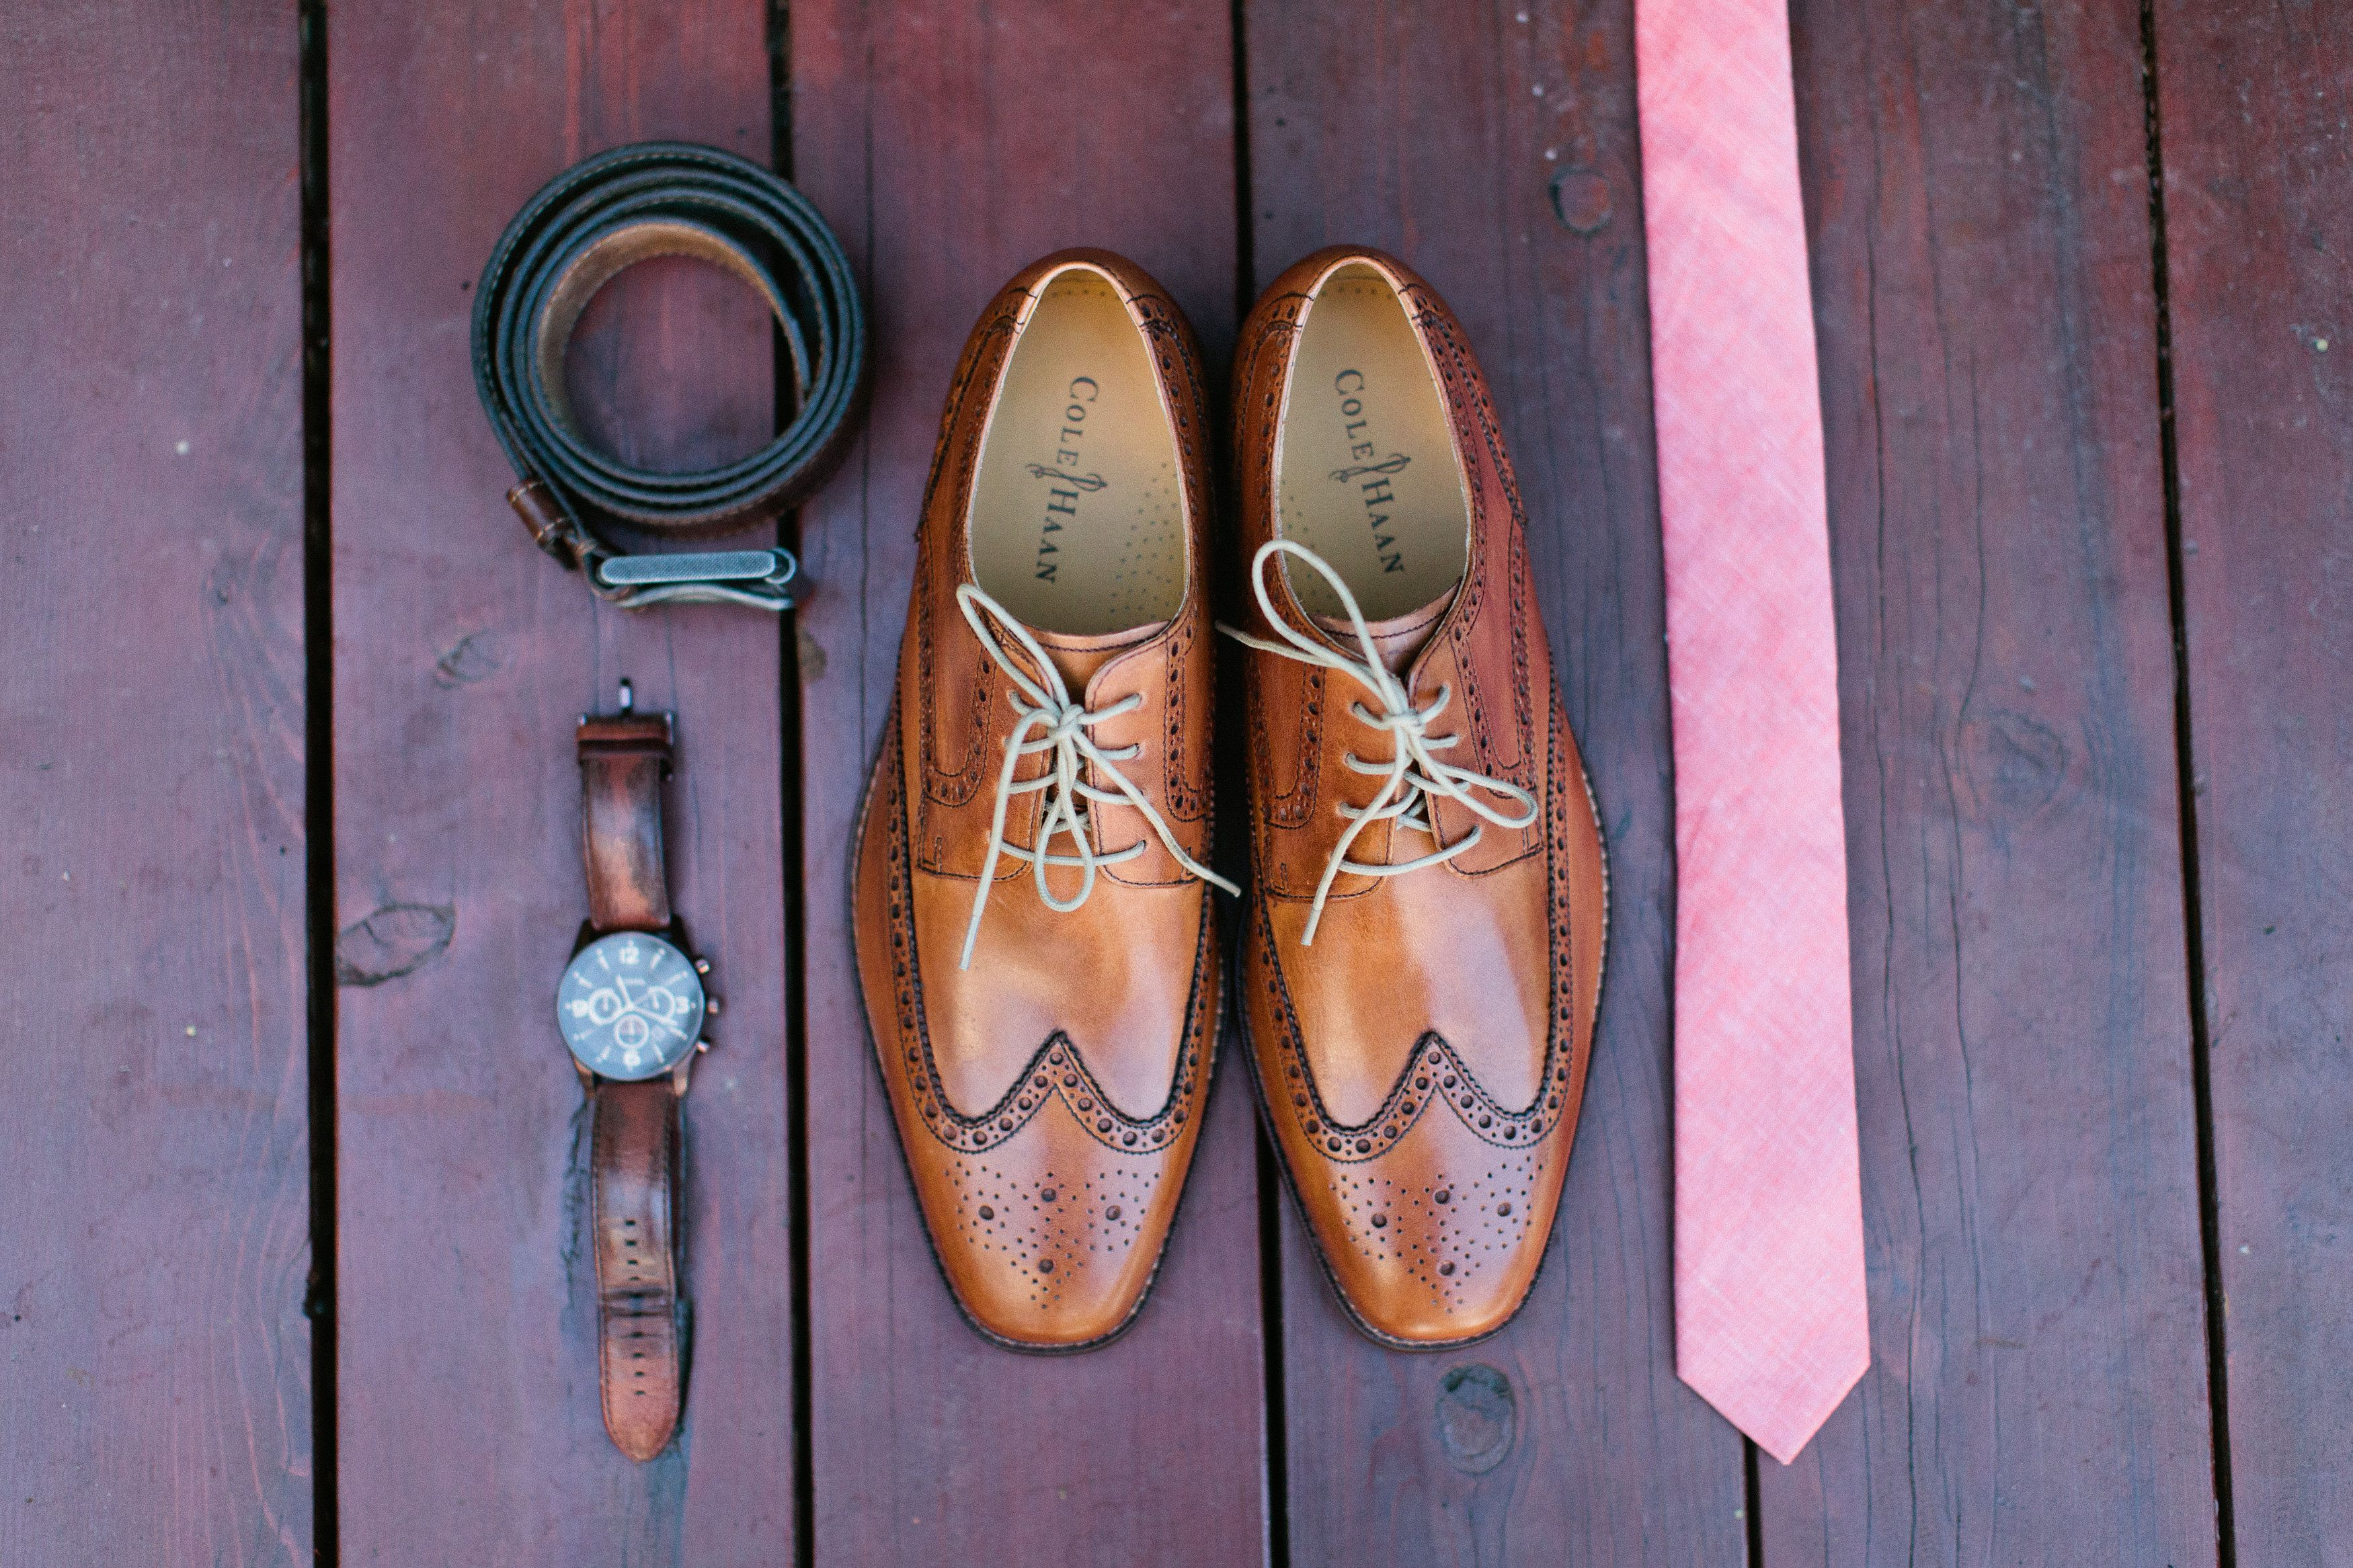 Good pair of men's dress shoes is a must! #groomattire #hamiltonoakswinery #winerywedding #ocweddingvenues #sanjuancapistrano www.hamiltonoaksevents.com www.spostophotography.com